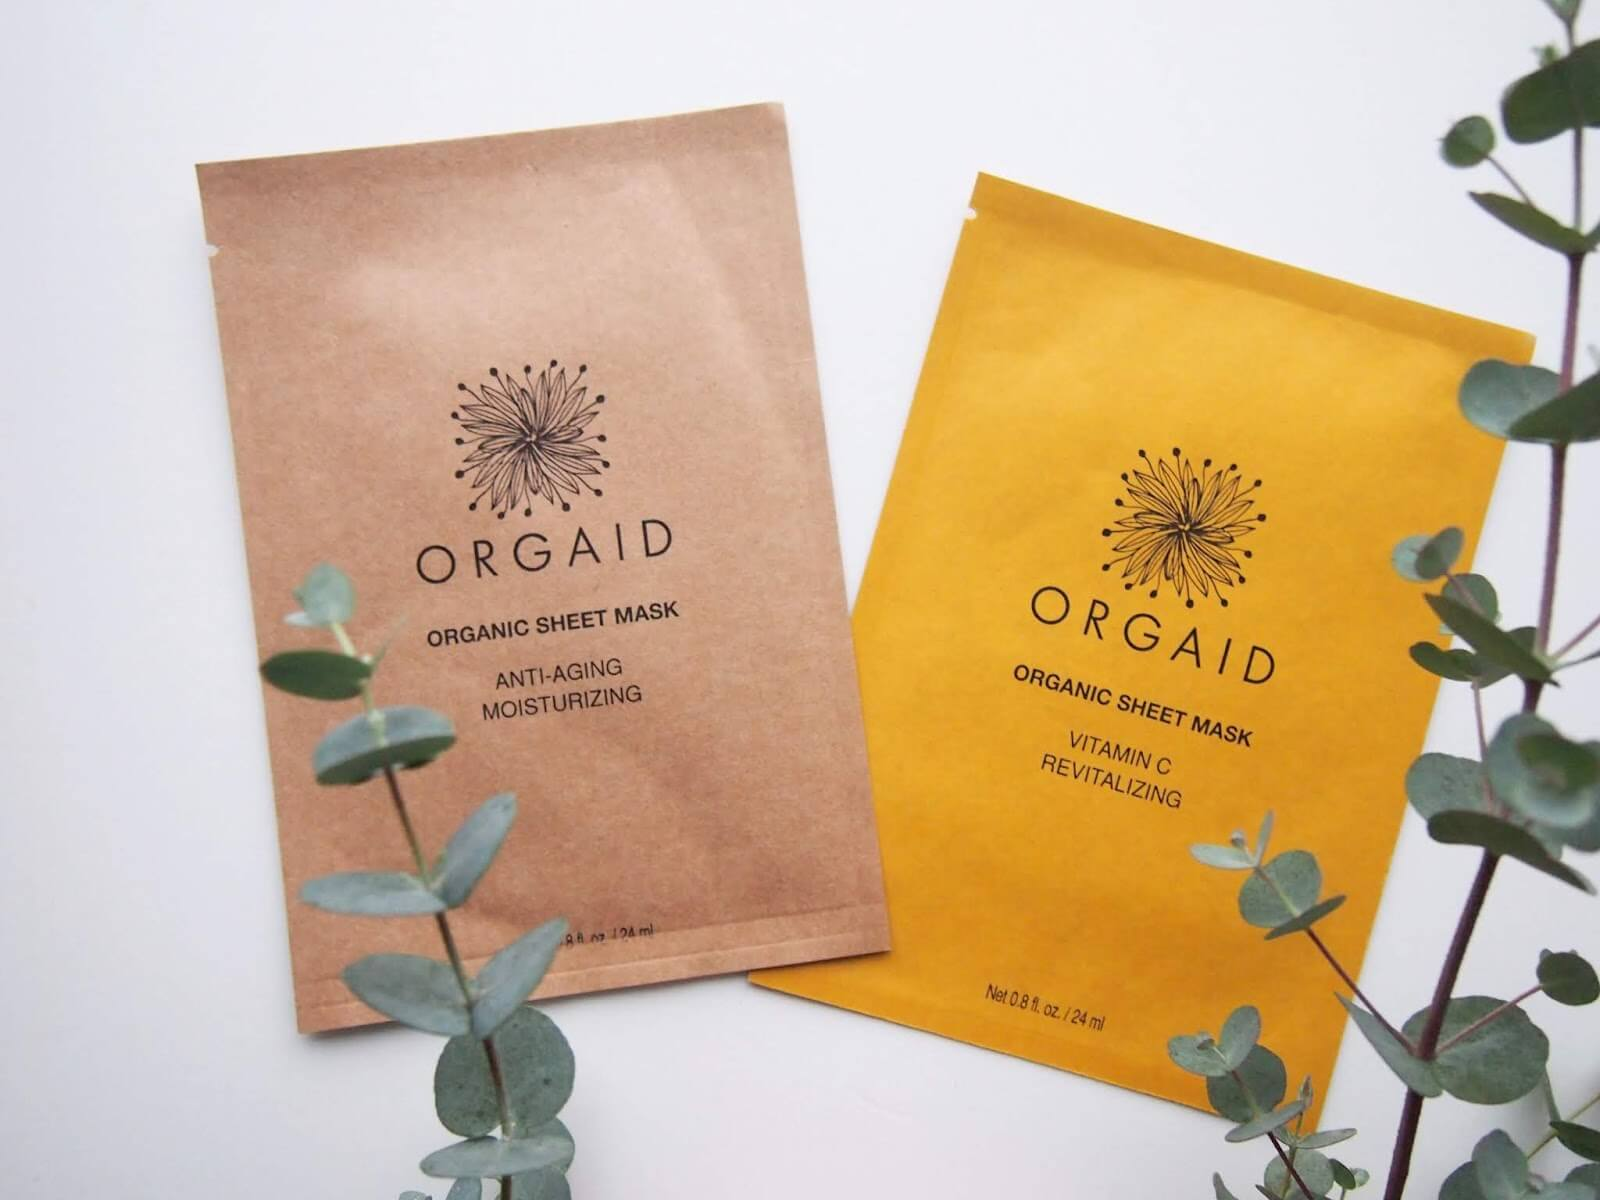 Orgaid Sheet Mask